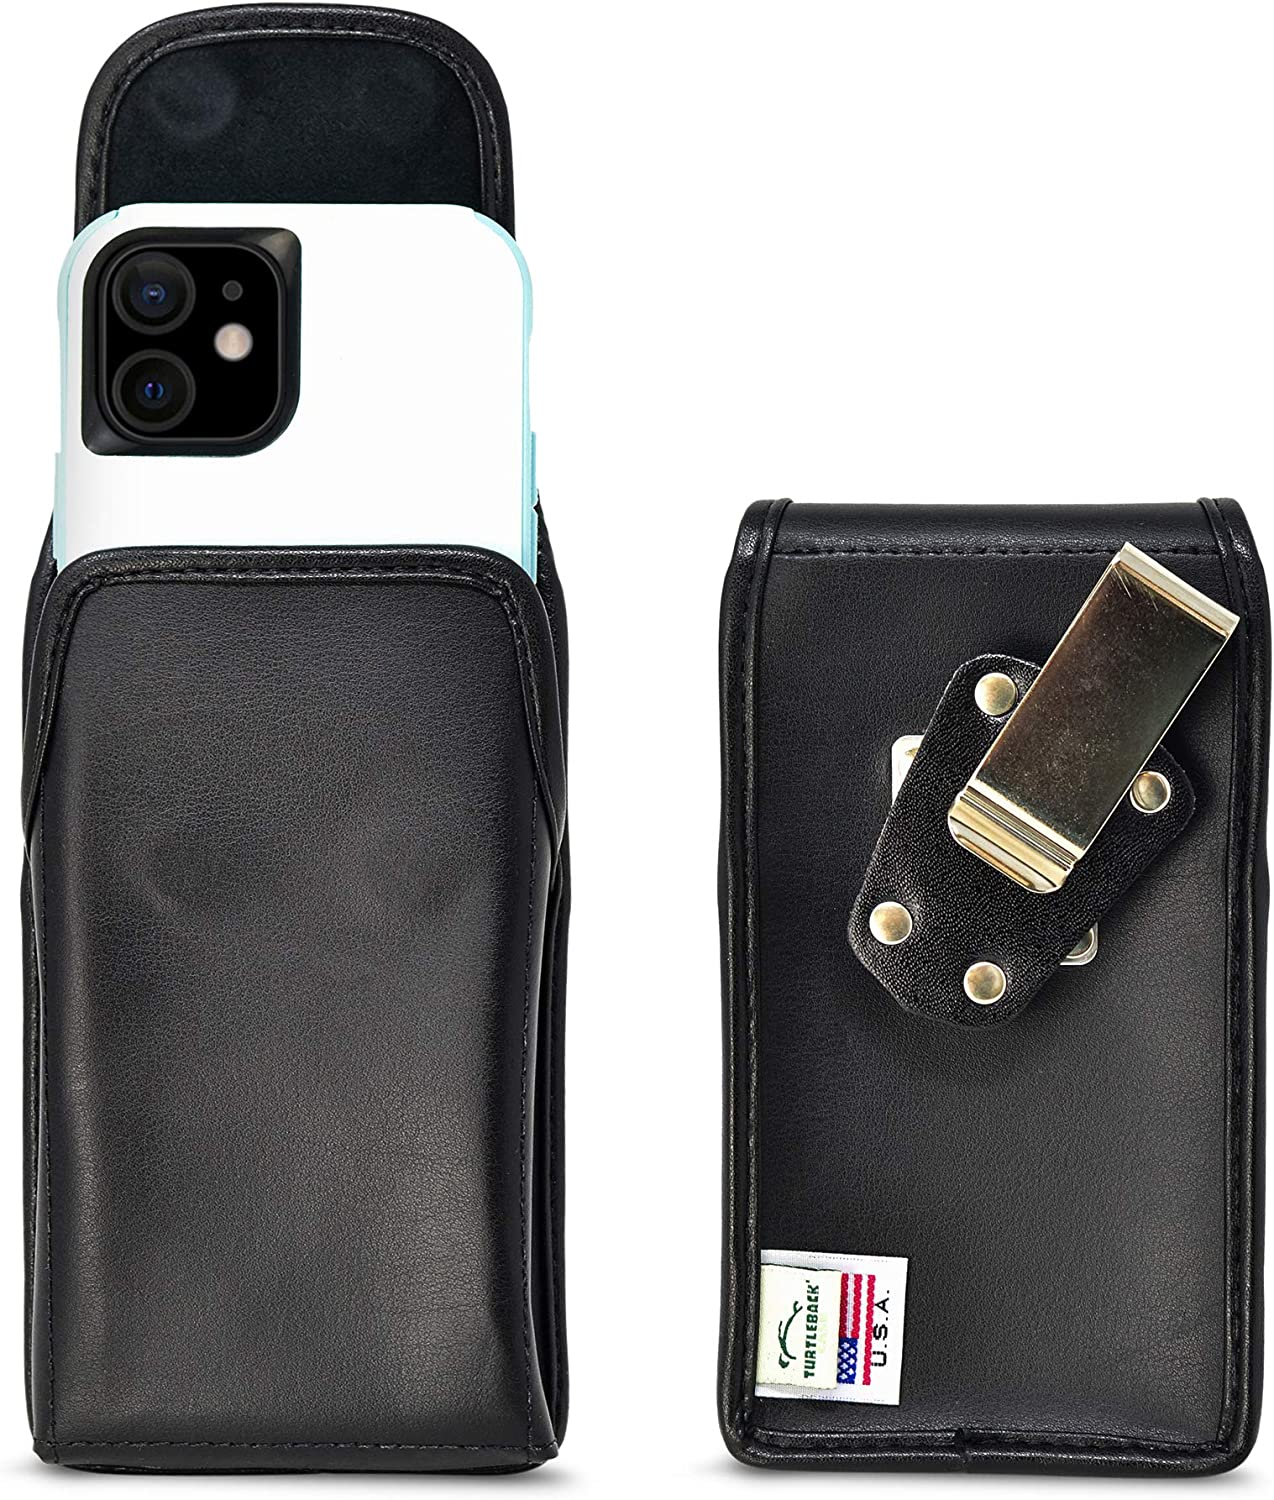 Turtleback Belt Case Designed for iPhone 12 13 & Pro Fits with Shockproof OB Commuter, Vertical Holster Black Leather Pouch with Heavy Duty Rotating Belt Clip, Made in USA